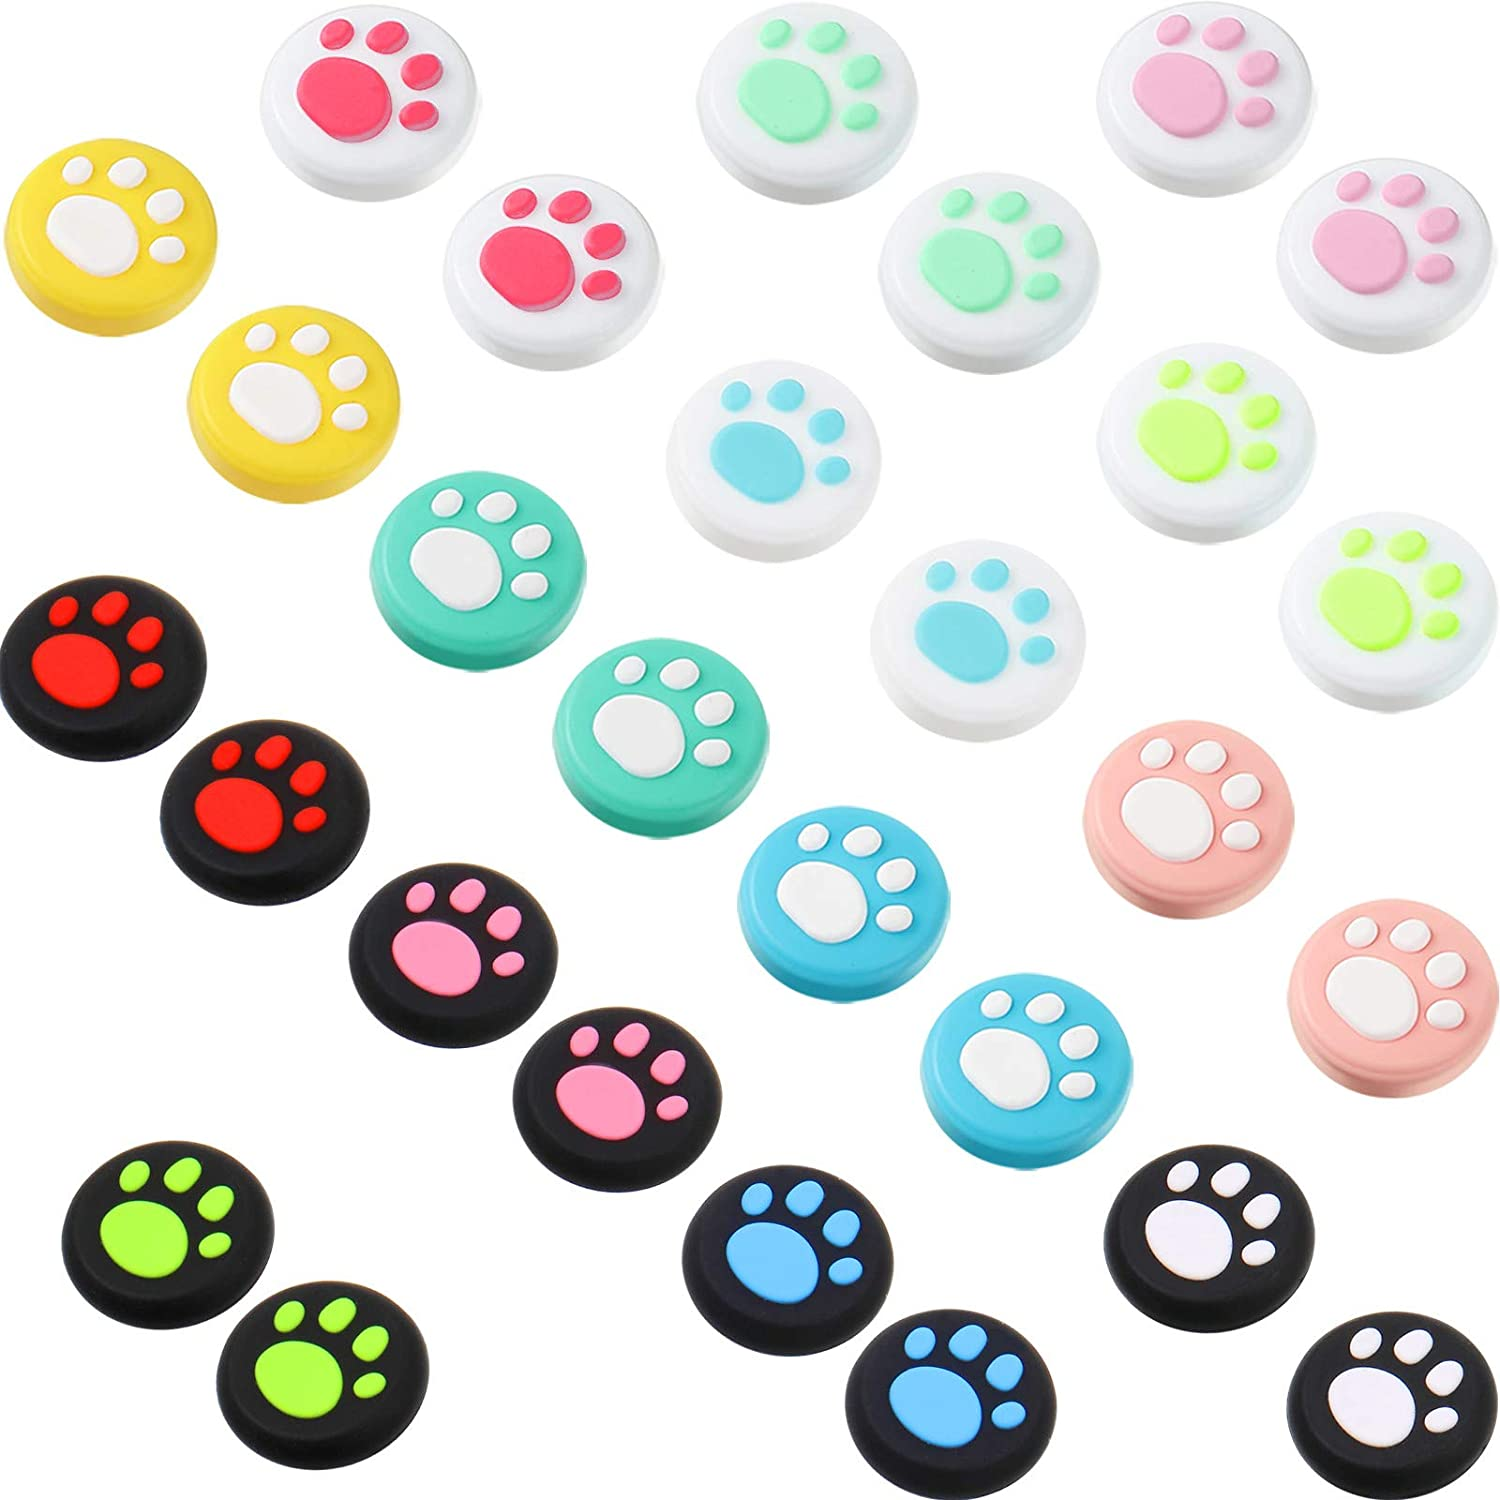 28 Pieces Cat Thumb Grips Caps Replacement Cat Claw Joystick Cap Silicone Cat Analog Stick Cover Compatible with PS5 PS4 PS3 PS2 Xbox 360 Xbox One Controllers: Toys & Games